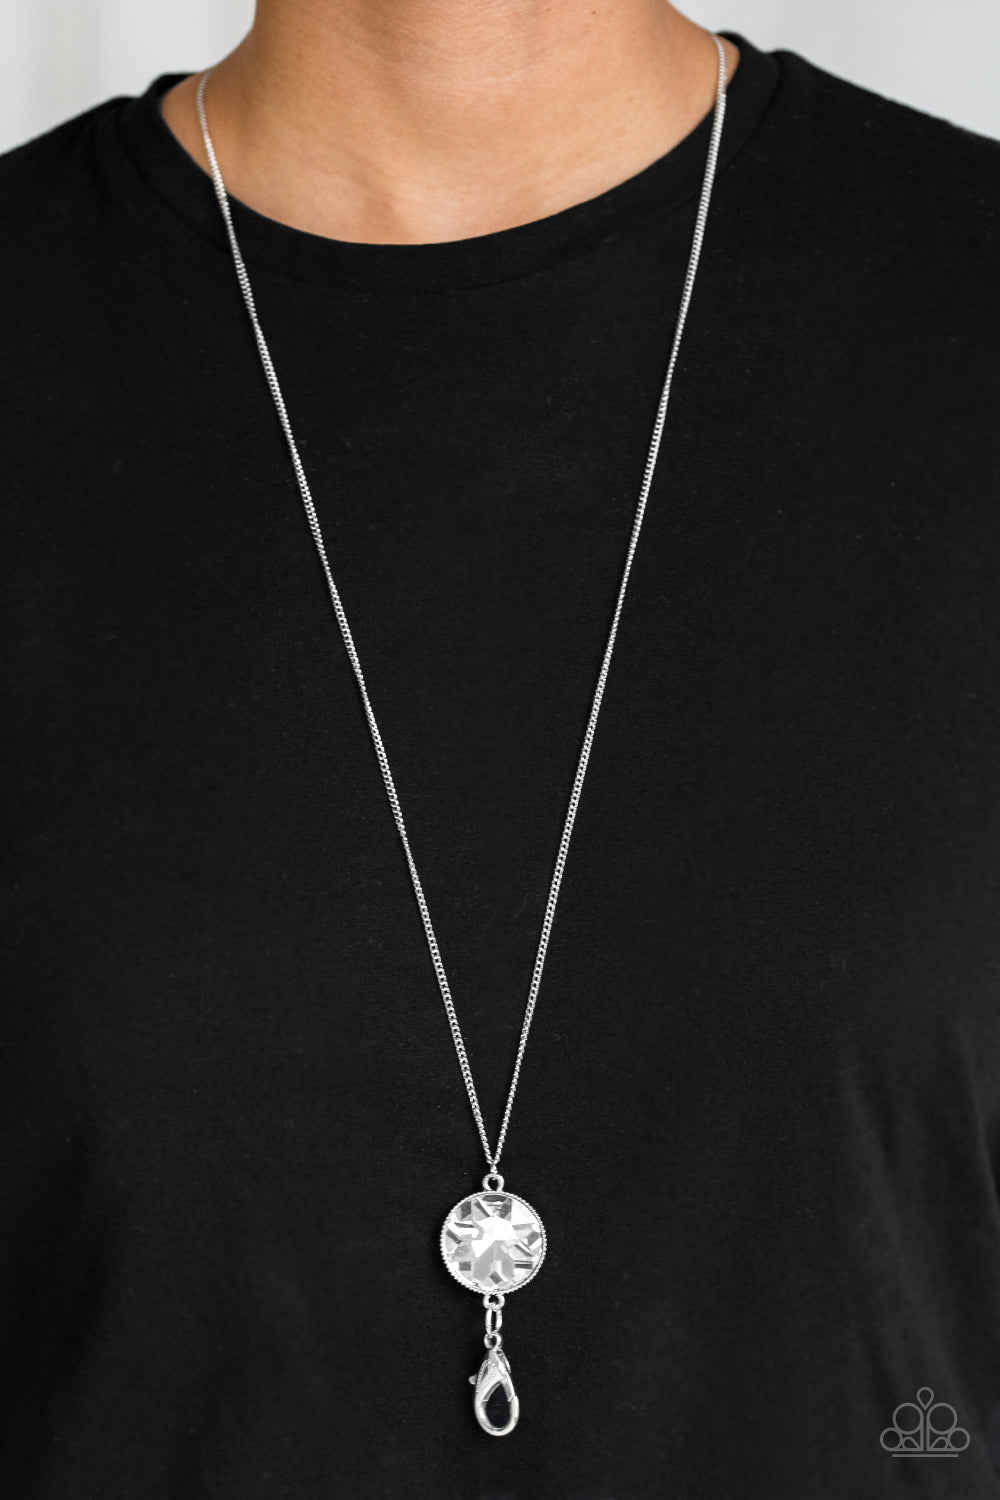 Gymnastics Diva Necklace Jewelry Art Pendant in SILVER BEZEL with Link Chain Included APN244